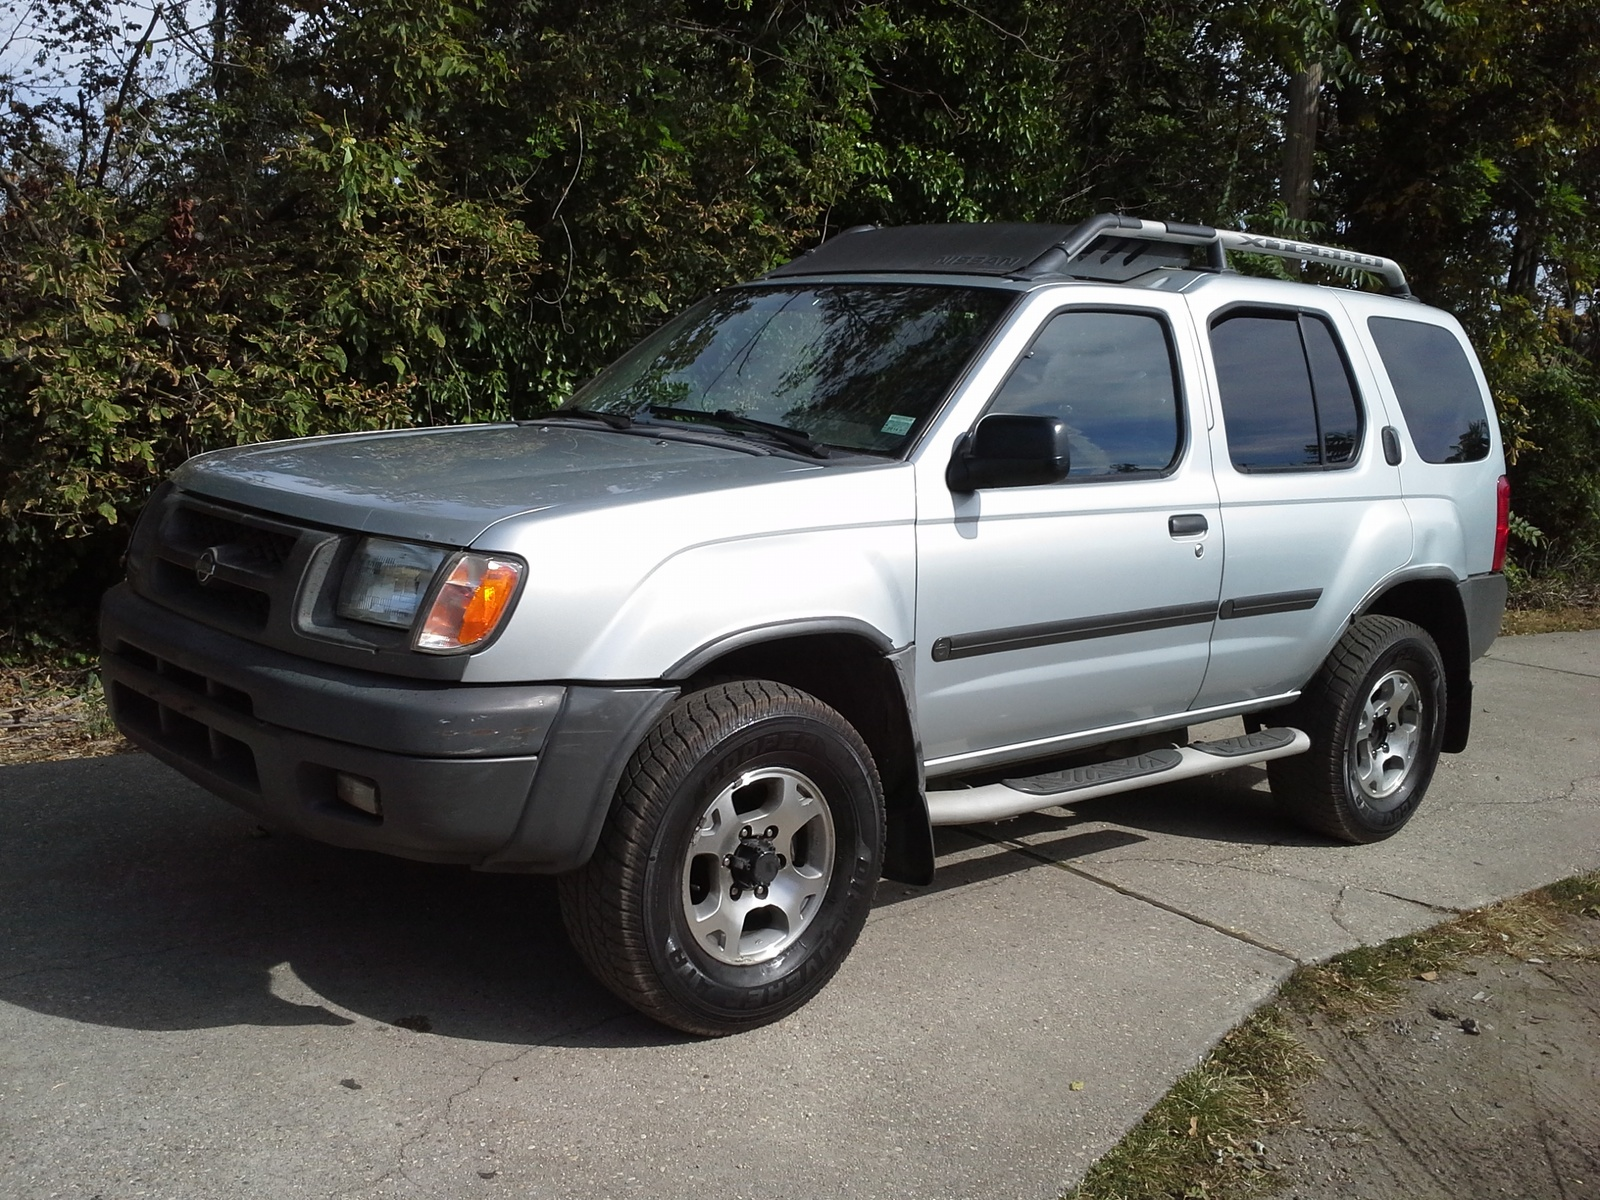 Used Nissan Xterra >> 2001 Nissan Xterra - Pictures - CarGurus